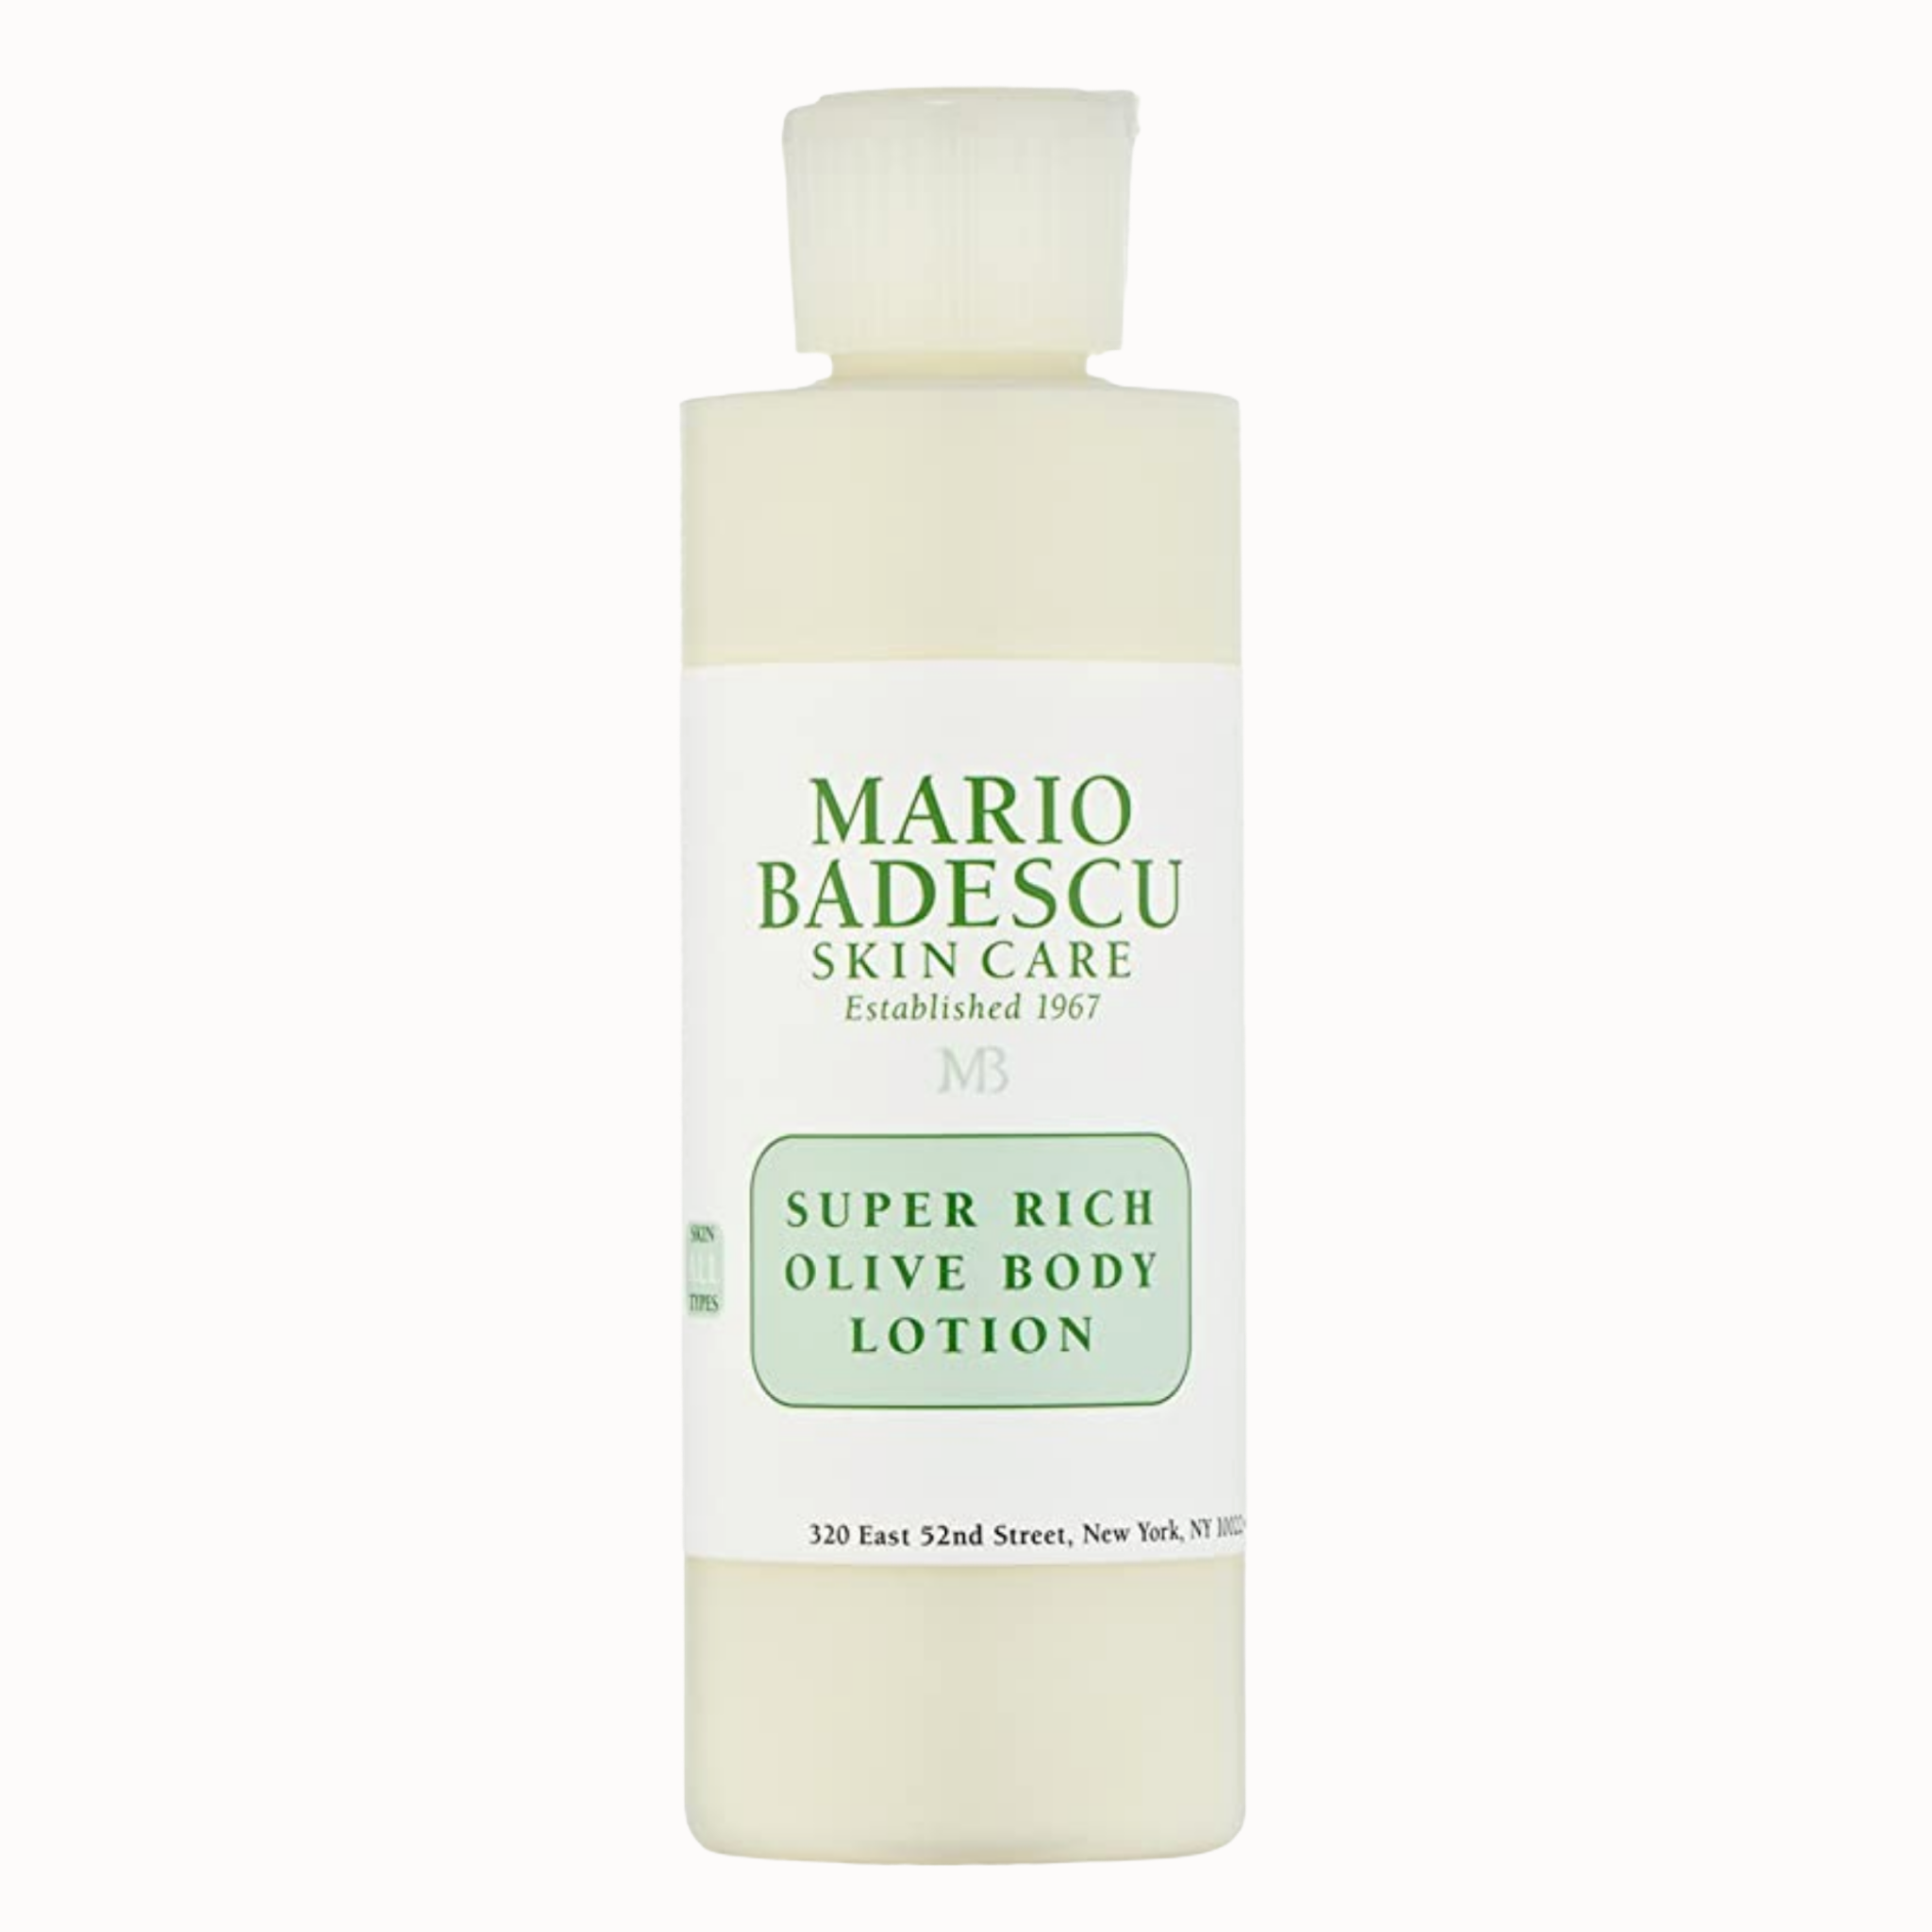 SUPER RICH OLIVE BODY LOTION